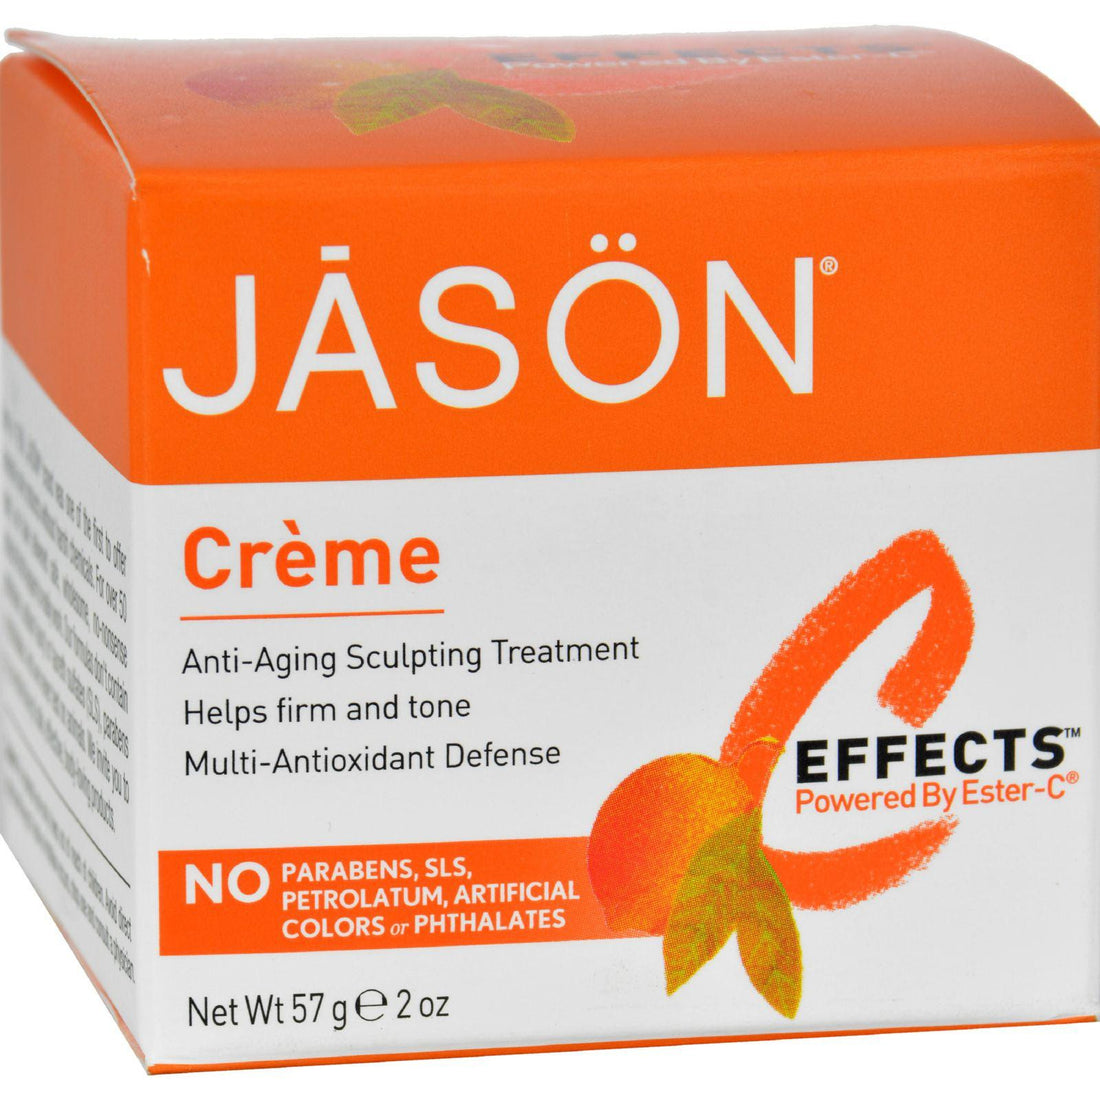 Mother Mantis: Jason Pure Natural Creme C Effects Powered By Ester-c - 2 Oz Jason Natural Products